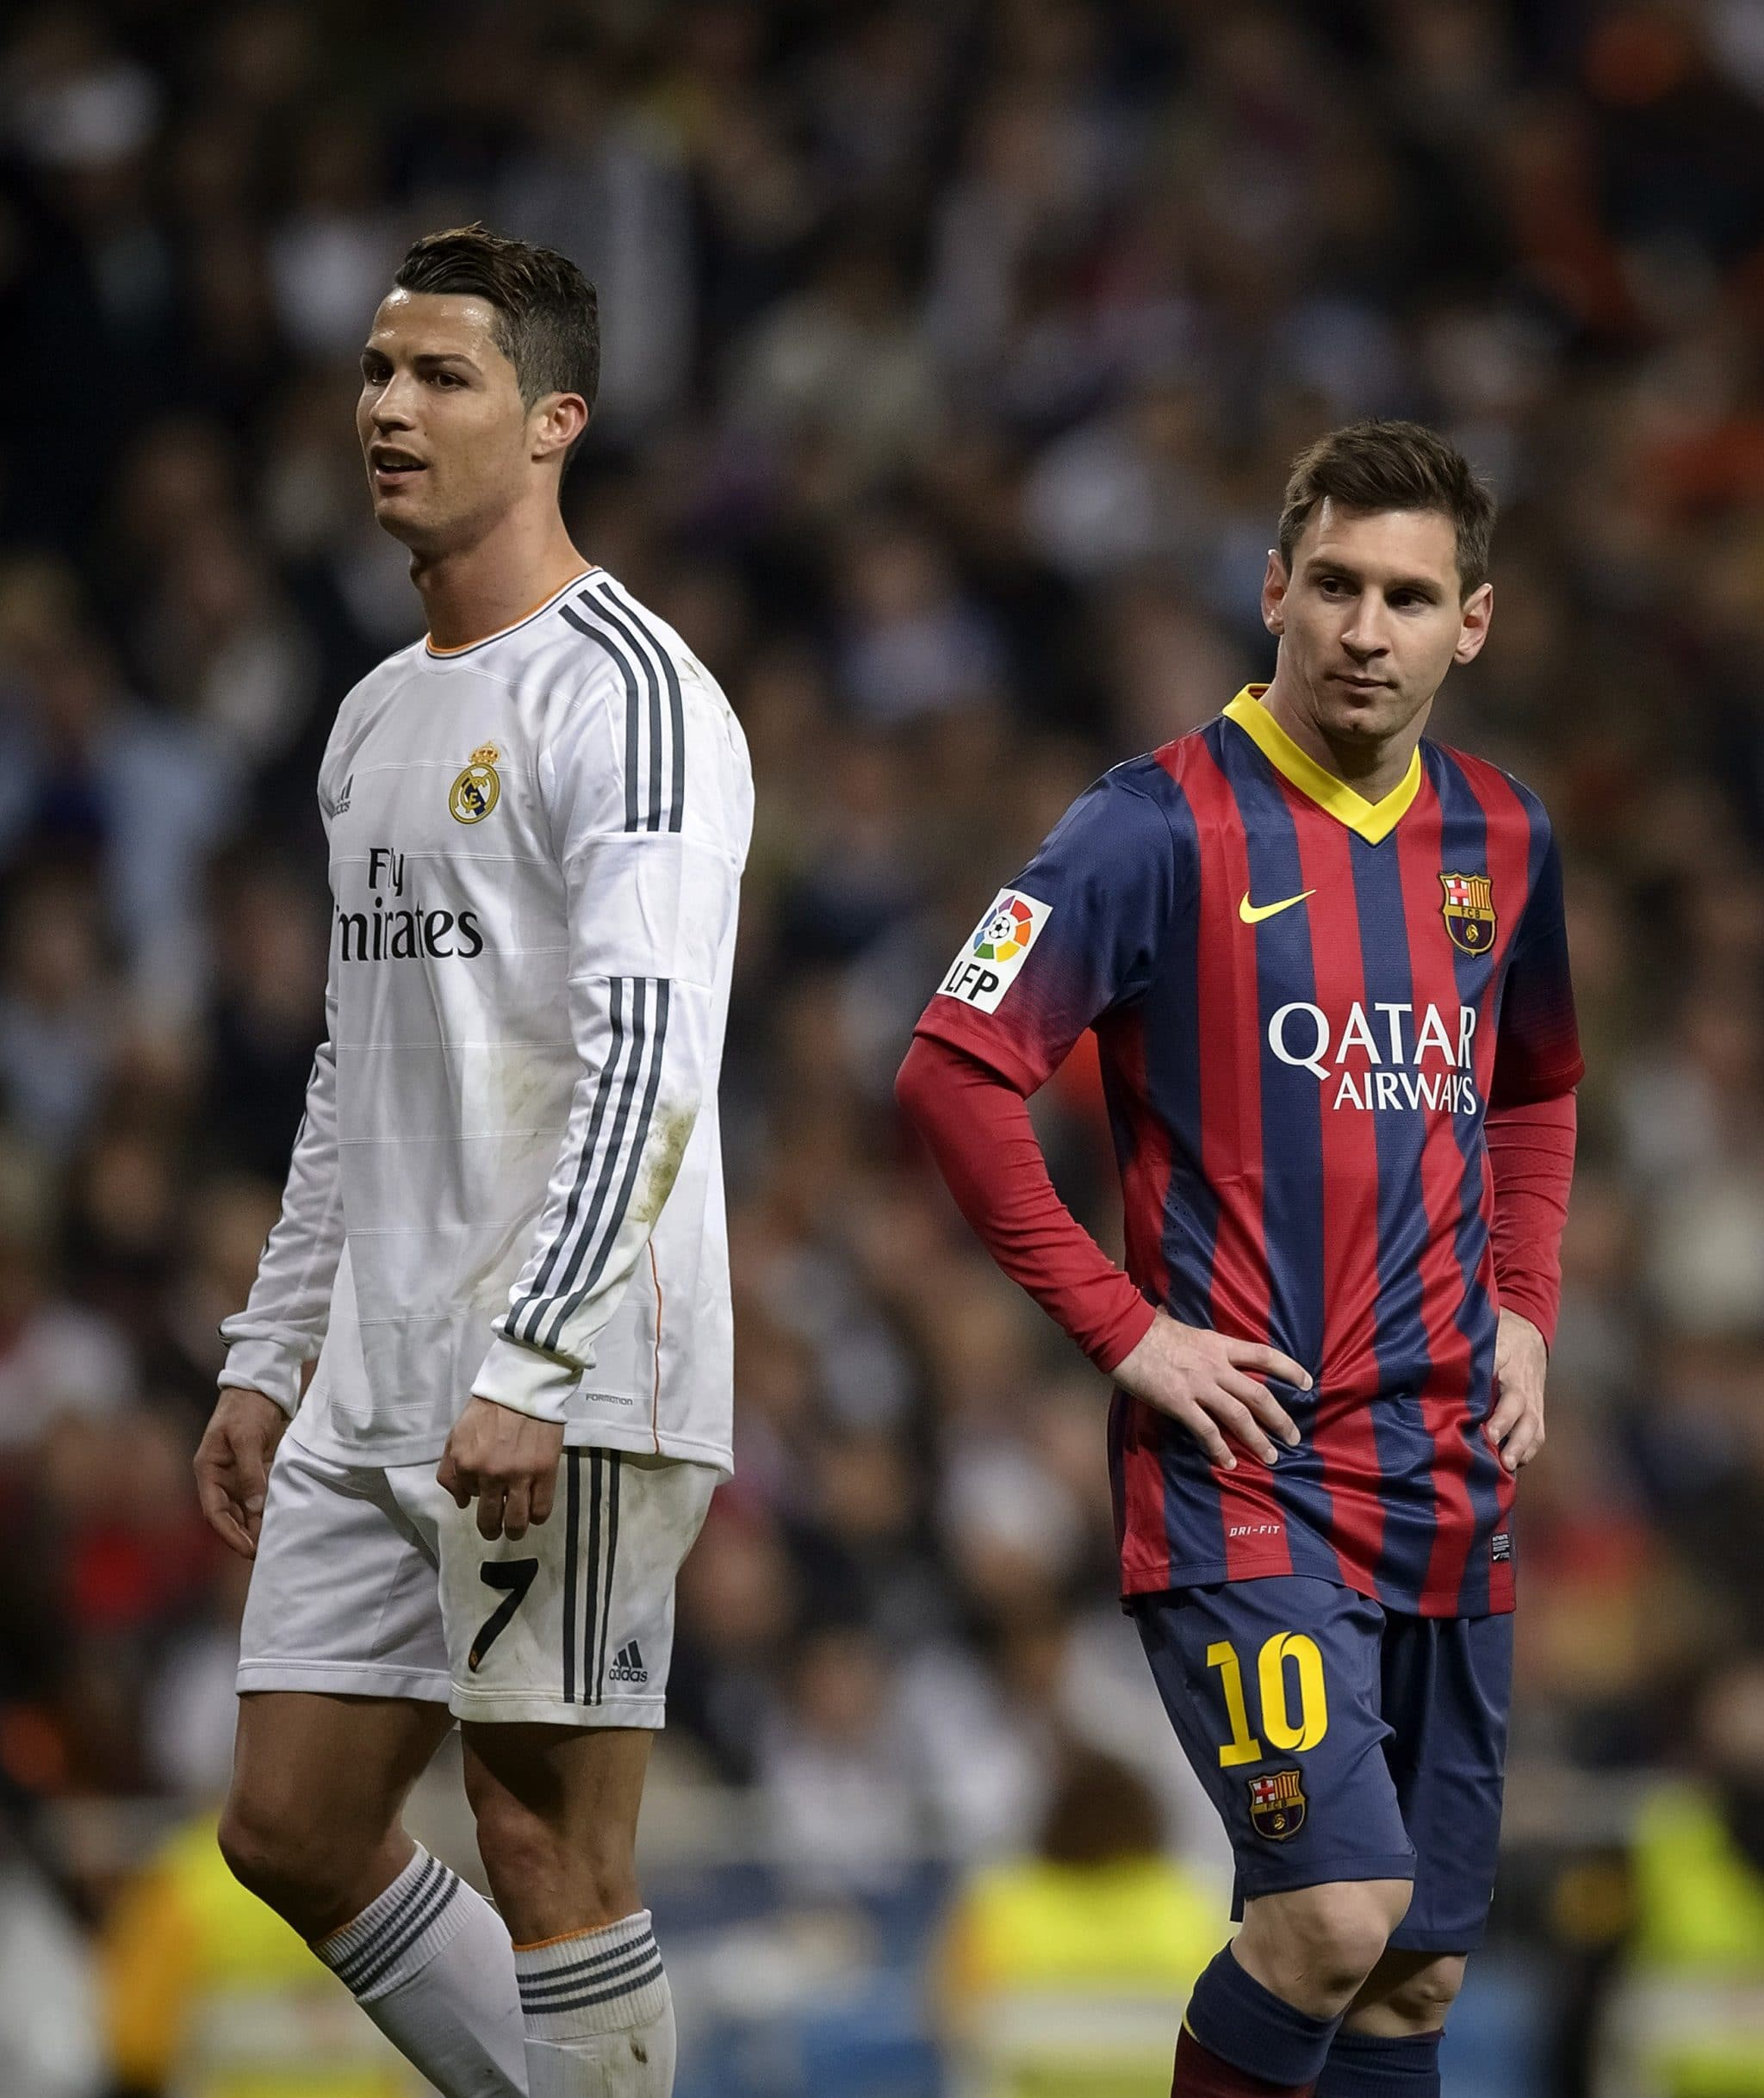 Will there be a Changing of the Guard in La Liga this Season?